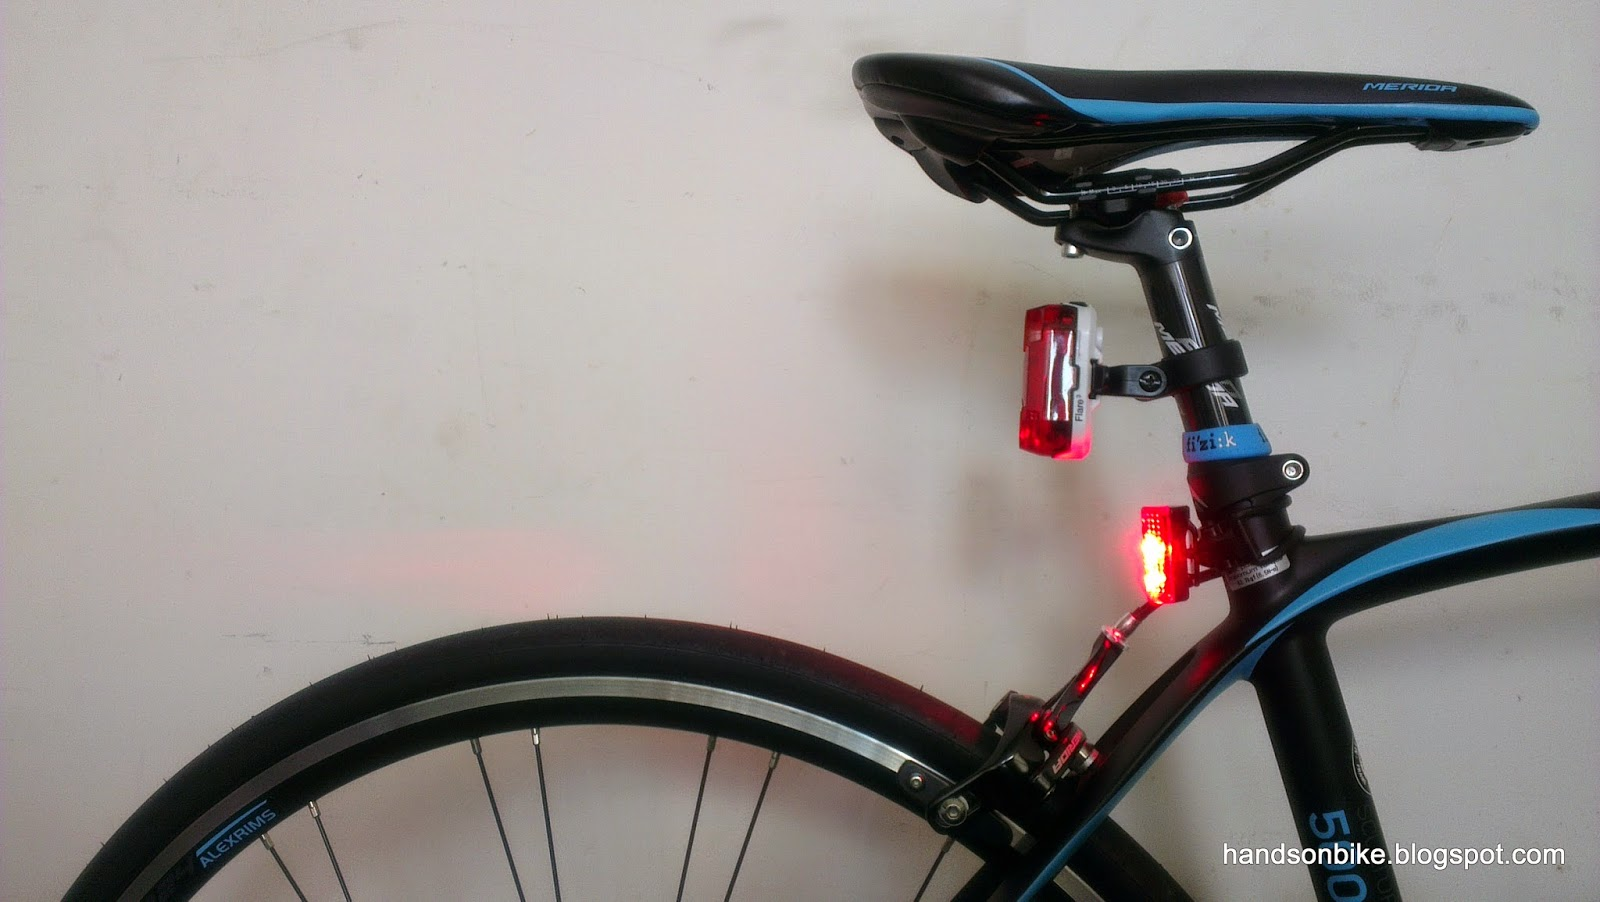 This Is A Minor Issue But I Wanted To Look For Nicer Rear Light That Can Blend In Nicely With The Seatpost Without Sticking Out